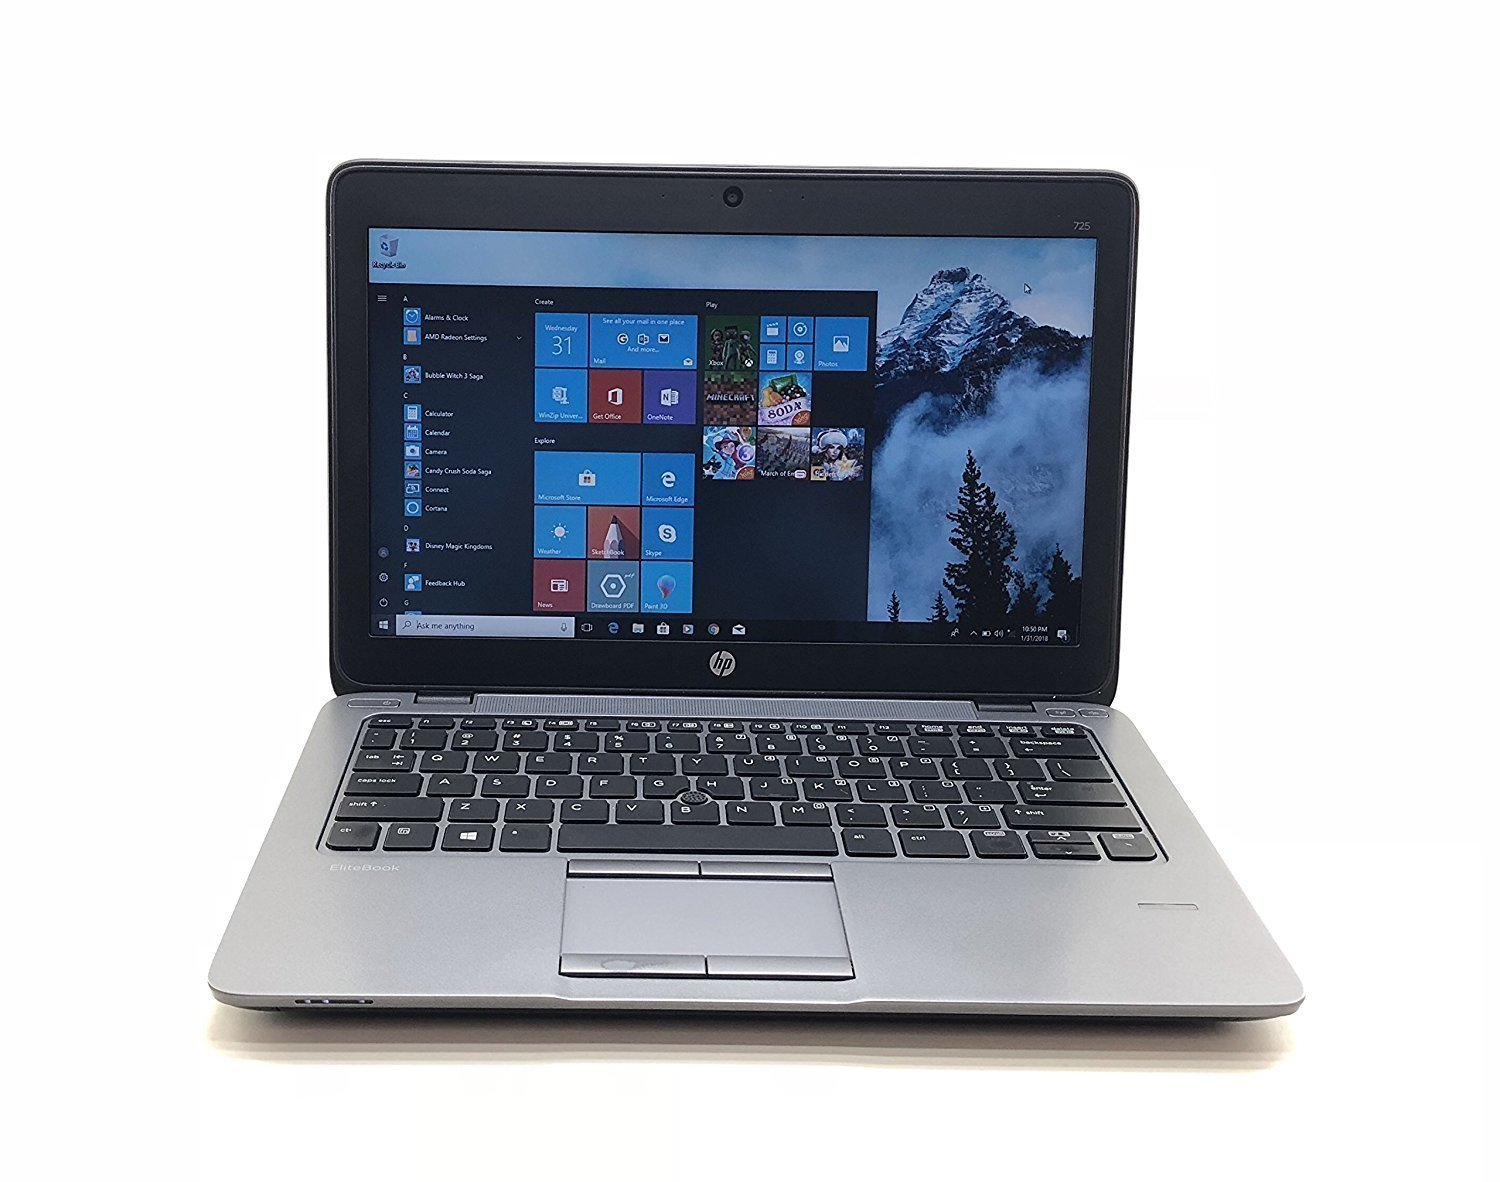 Windows 10 HP Elitebook English OS Laptop Computer, 英語版OSノートPC, AMD A8, 4 GB, 320 GB, 12.5 TFT, Windows 10 Pro (English), inbuilt Webcam, Wifi, Used computer, 中古ノート, Model: HP Elitebook 725 B07CZDN3HH